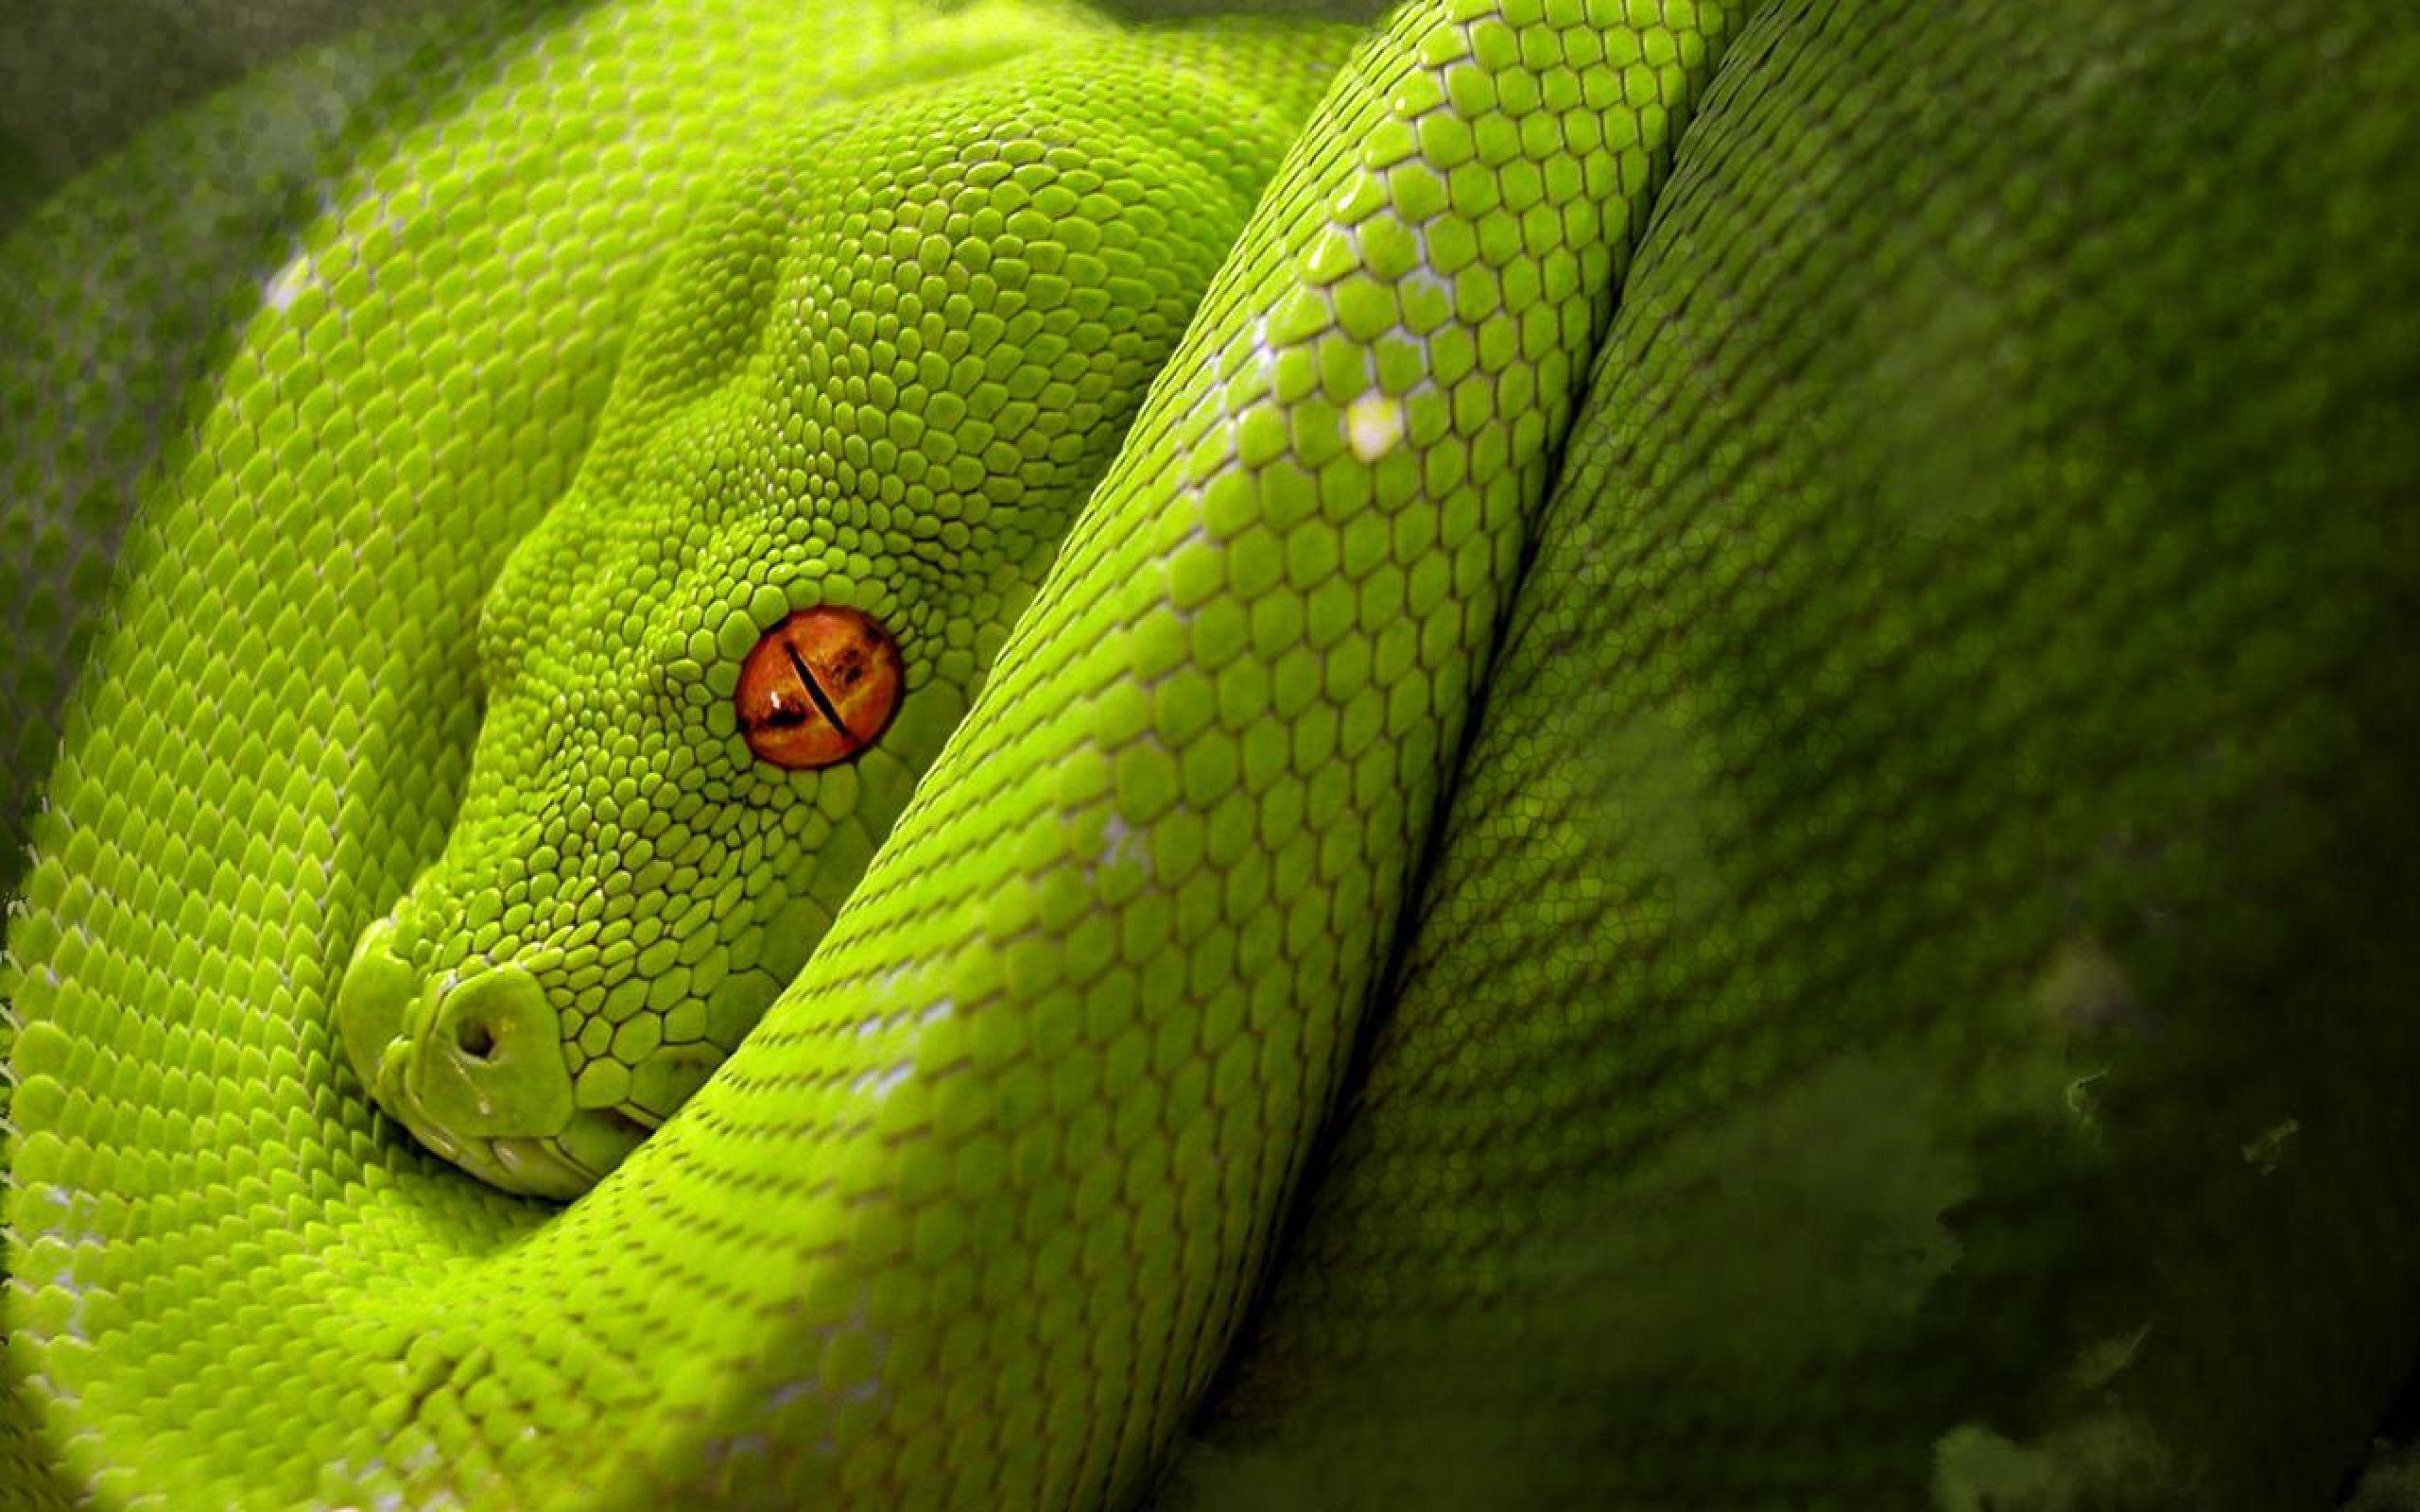 Astonishing Snake Desktop Wallpapers 1600x1200PX ~ Snake Wallpaper #